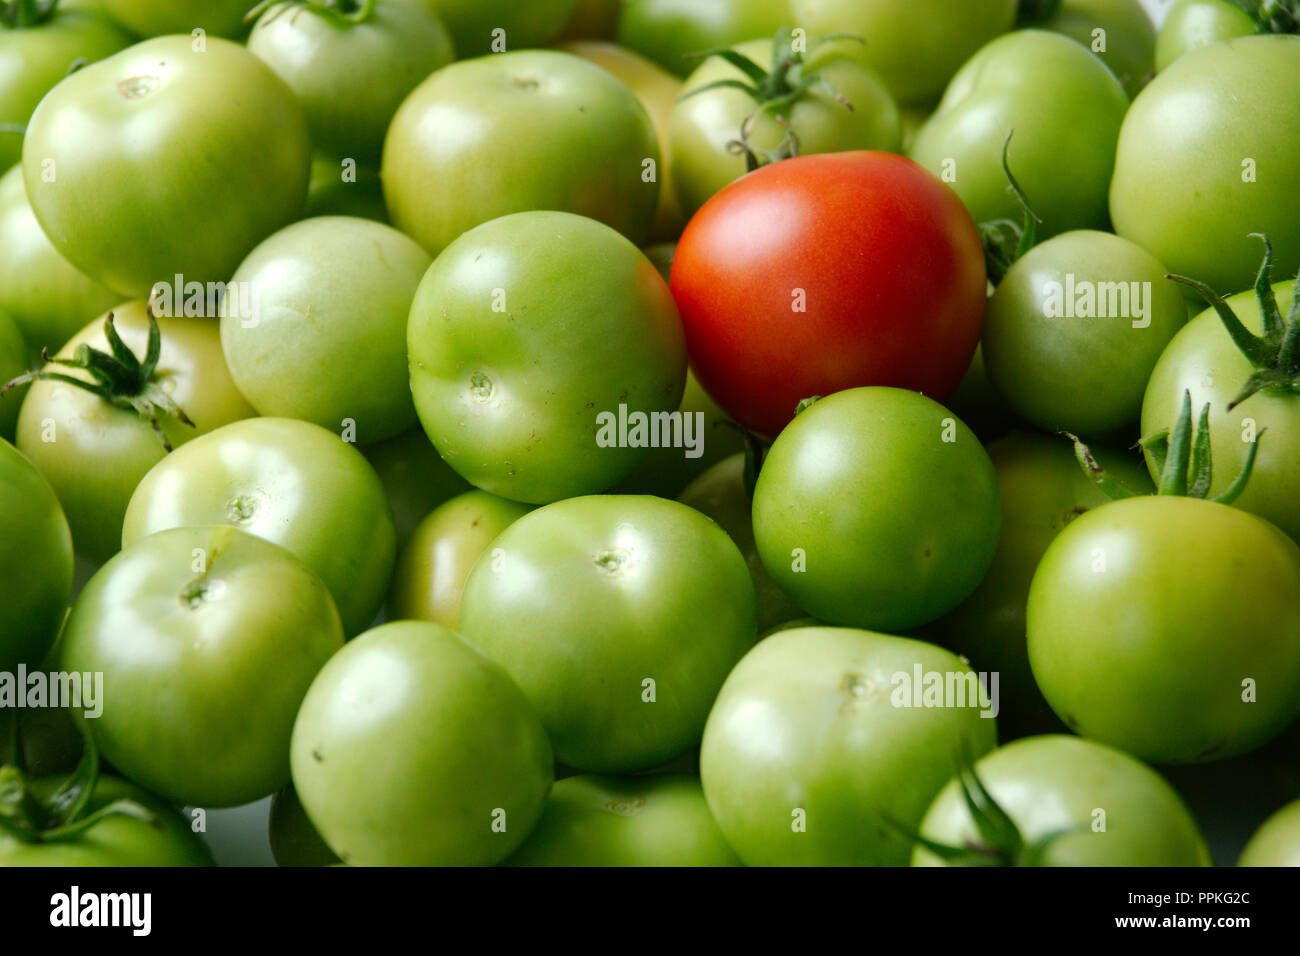 There's always one - one red tomatoe in a crowd of green - Stock Image